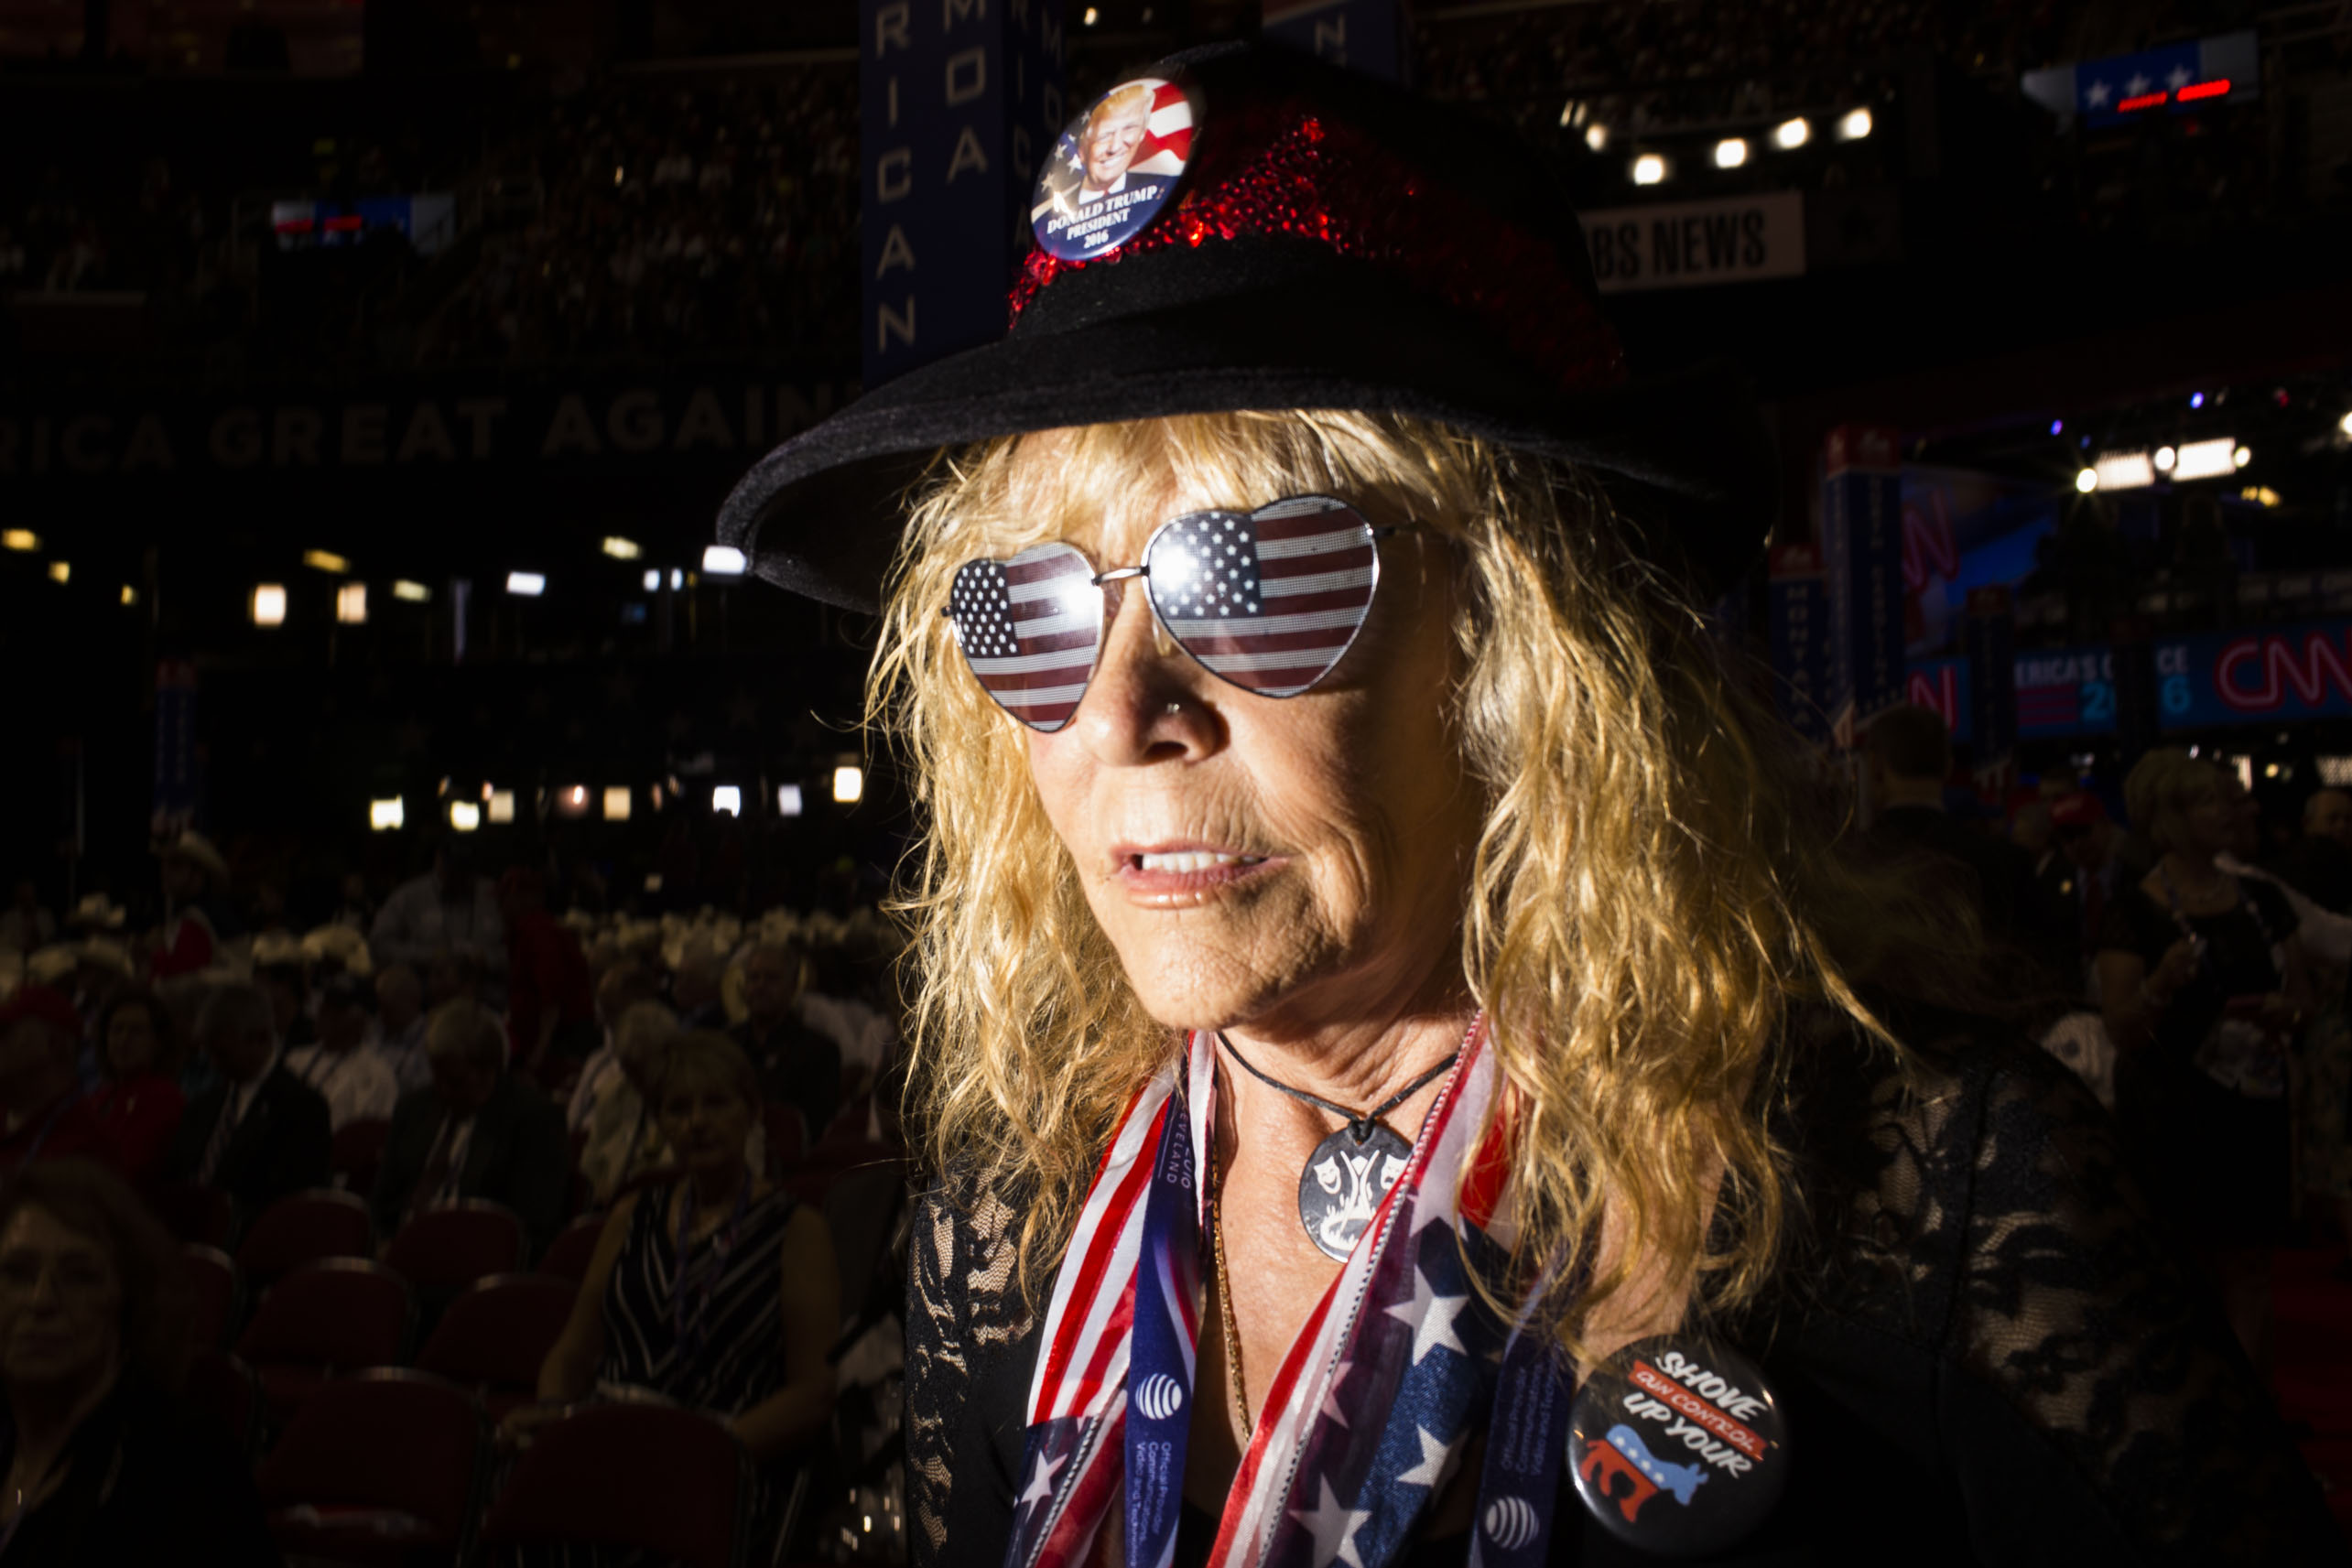 Flags are an essential theme at the 2016 Republican National Convention on Monday, July 18, 2016, in Cleveland.